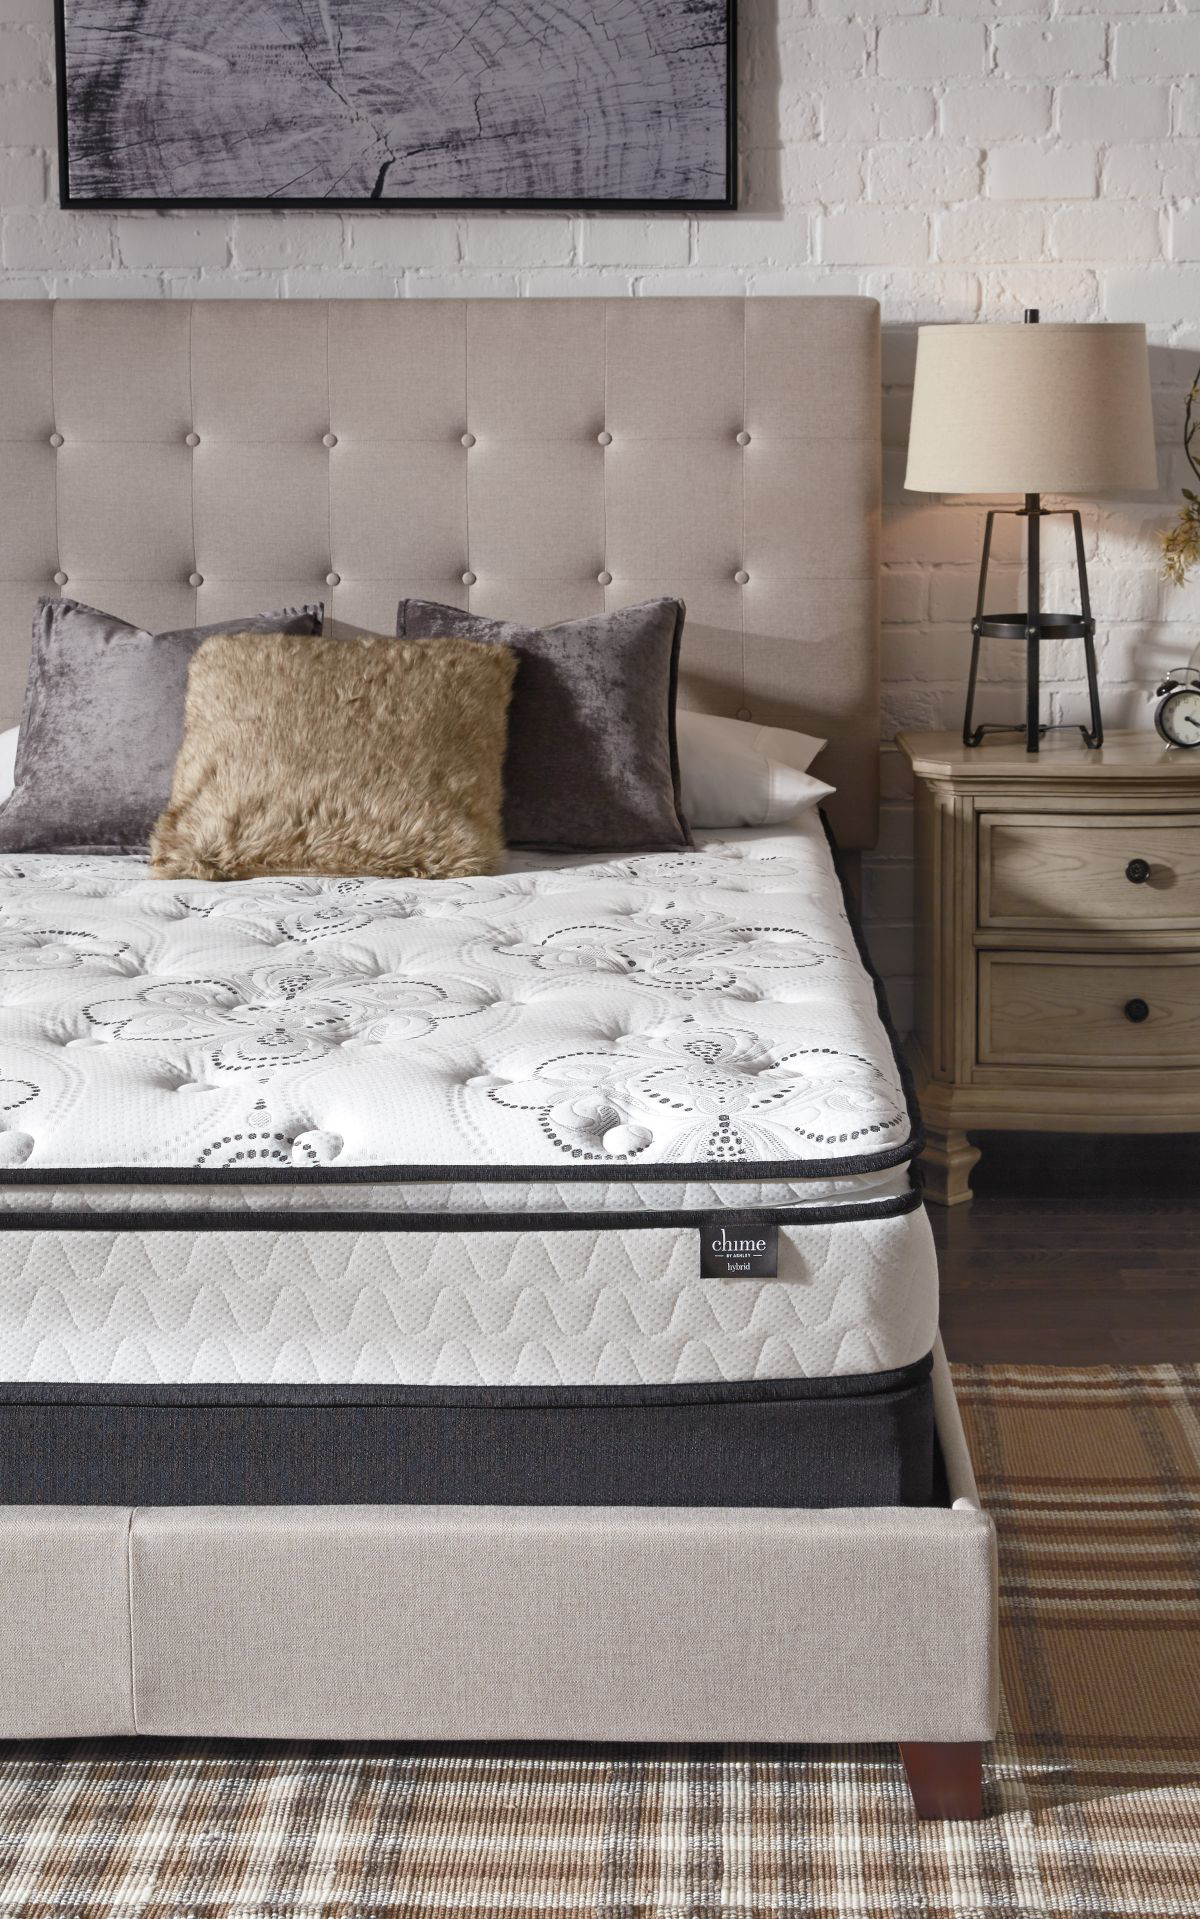 Picture of Chime 10in Pillowtop King Mattress